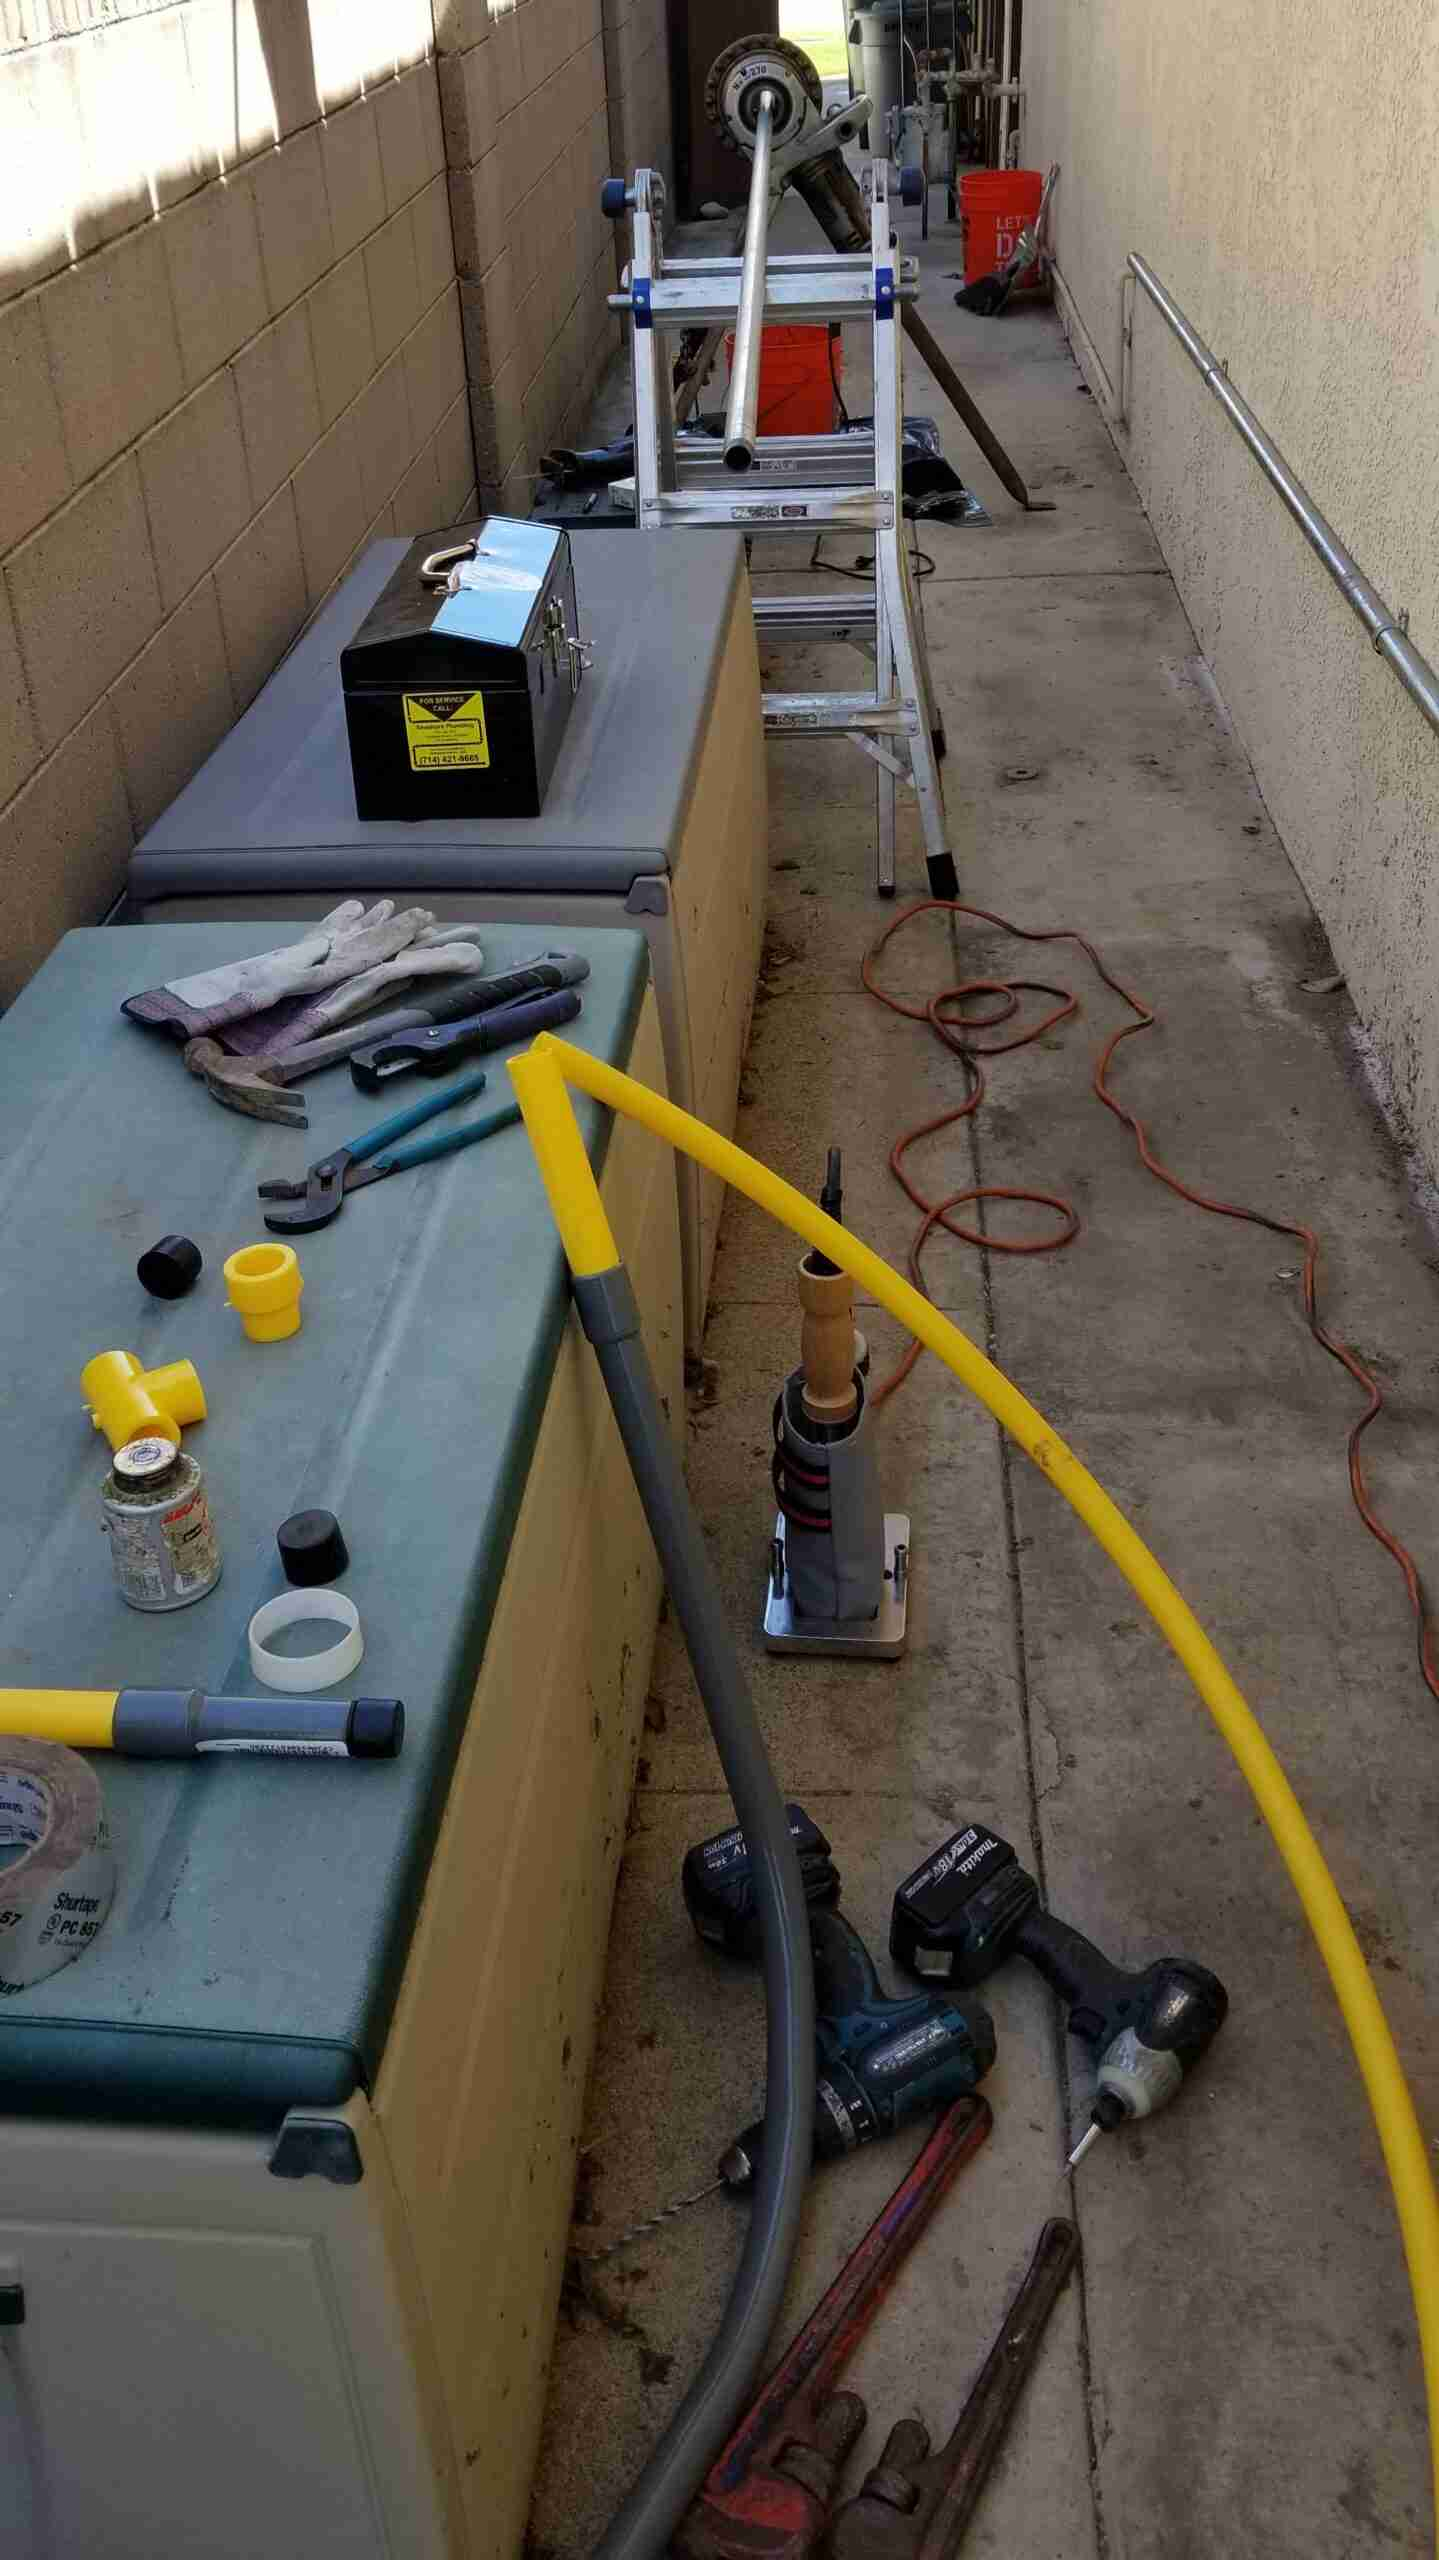 New gas service line along wall.